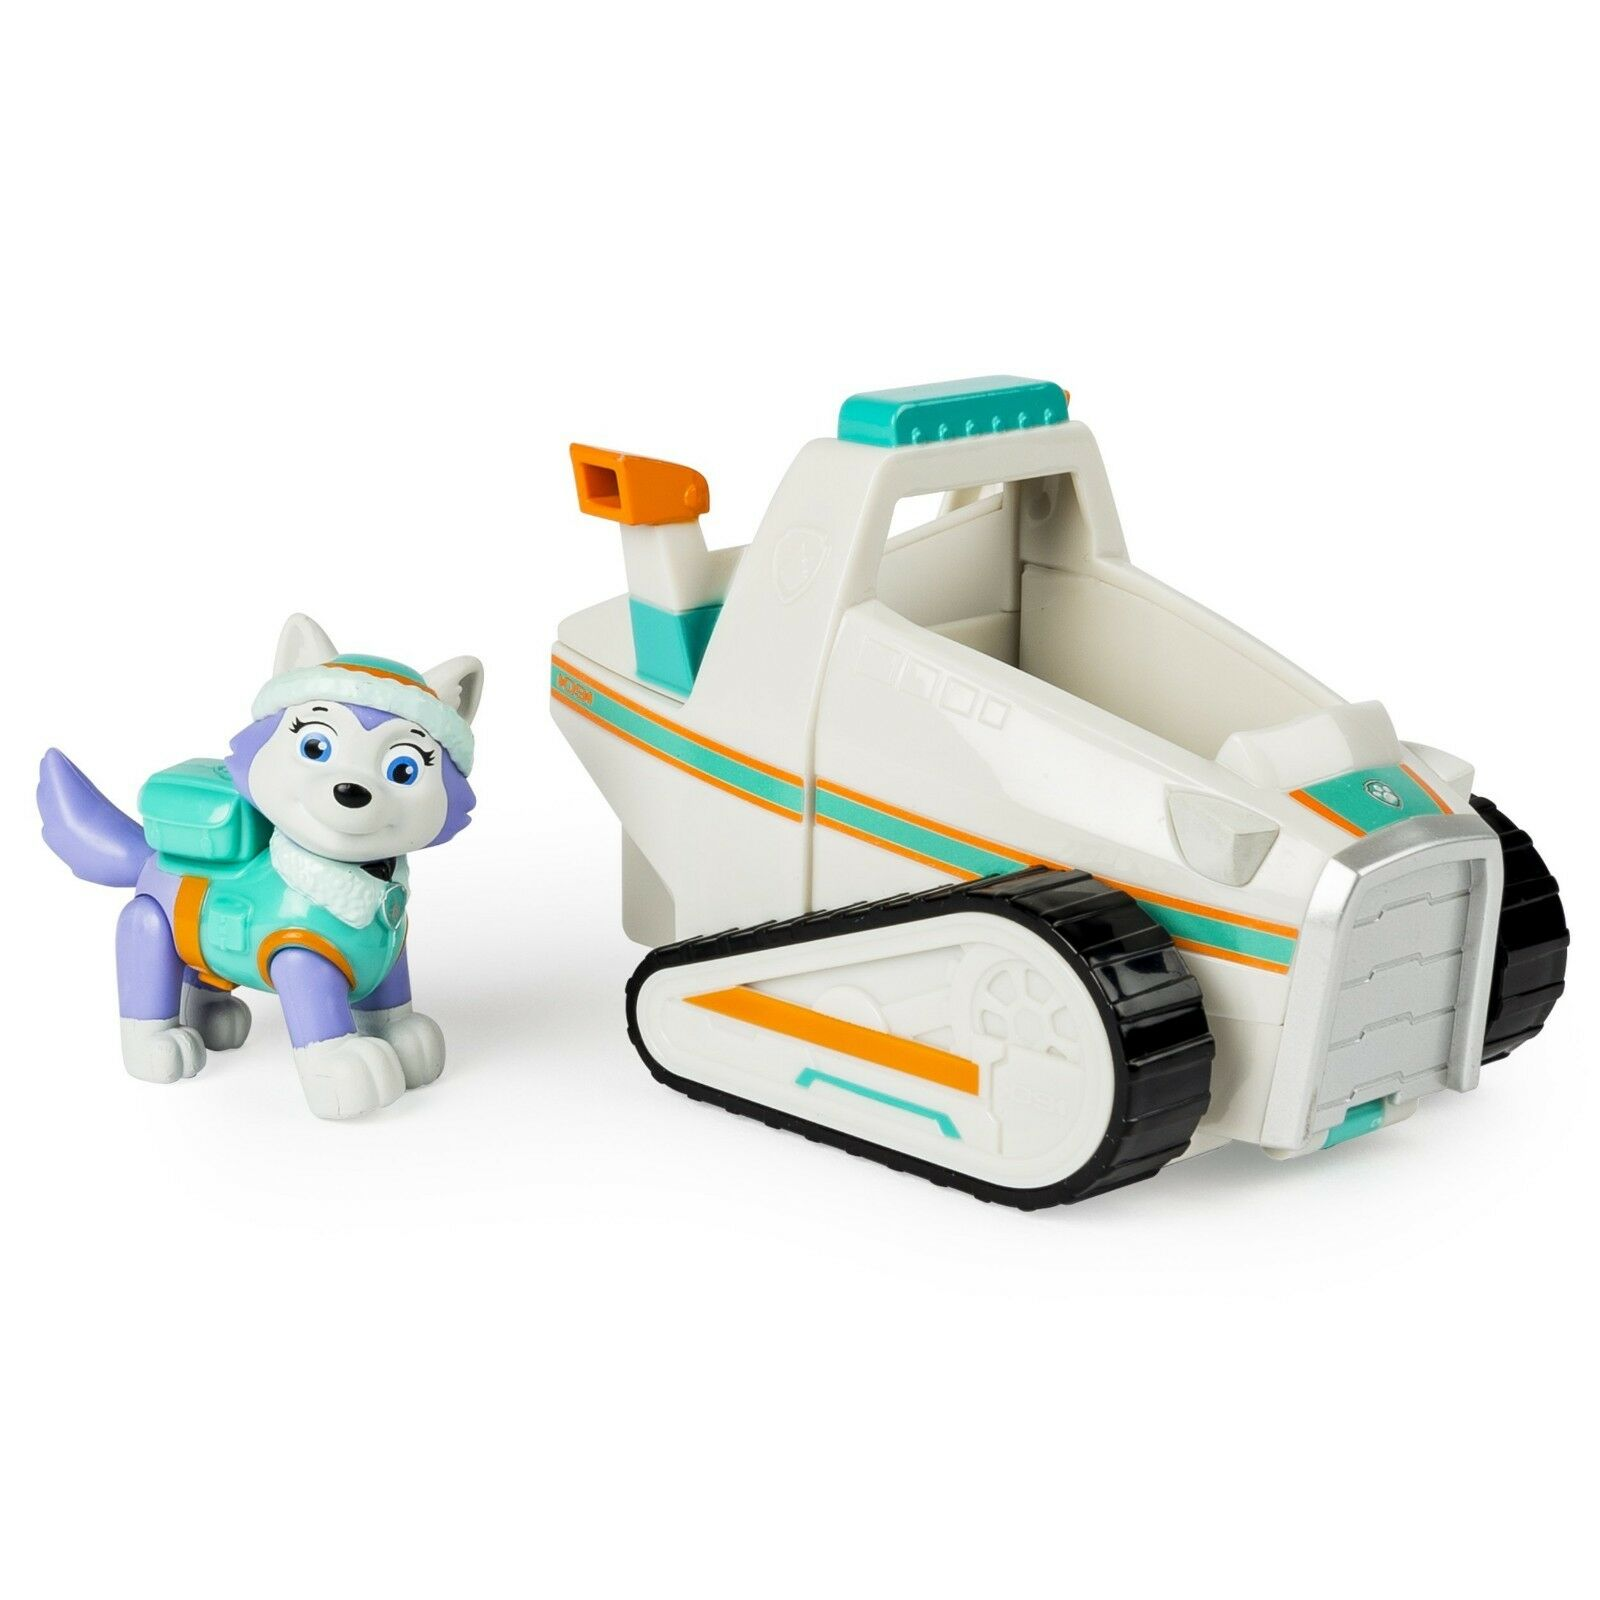 Paw Patrol Everest's Rescue Snowmobile,Vehicle and Figure Be